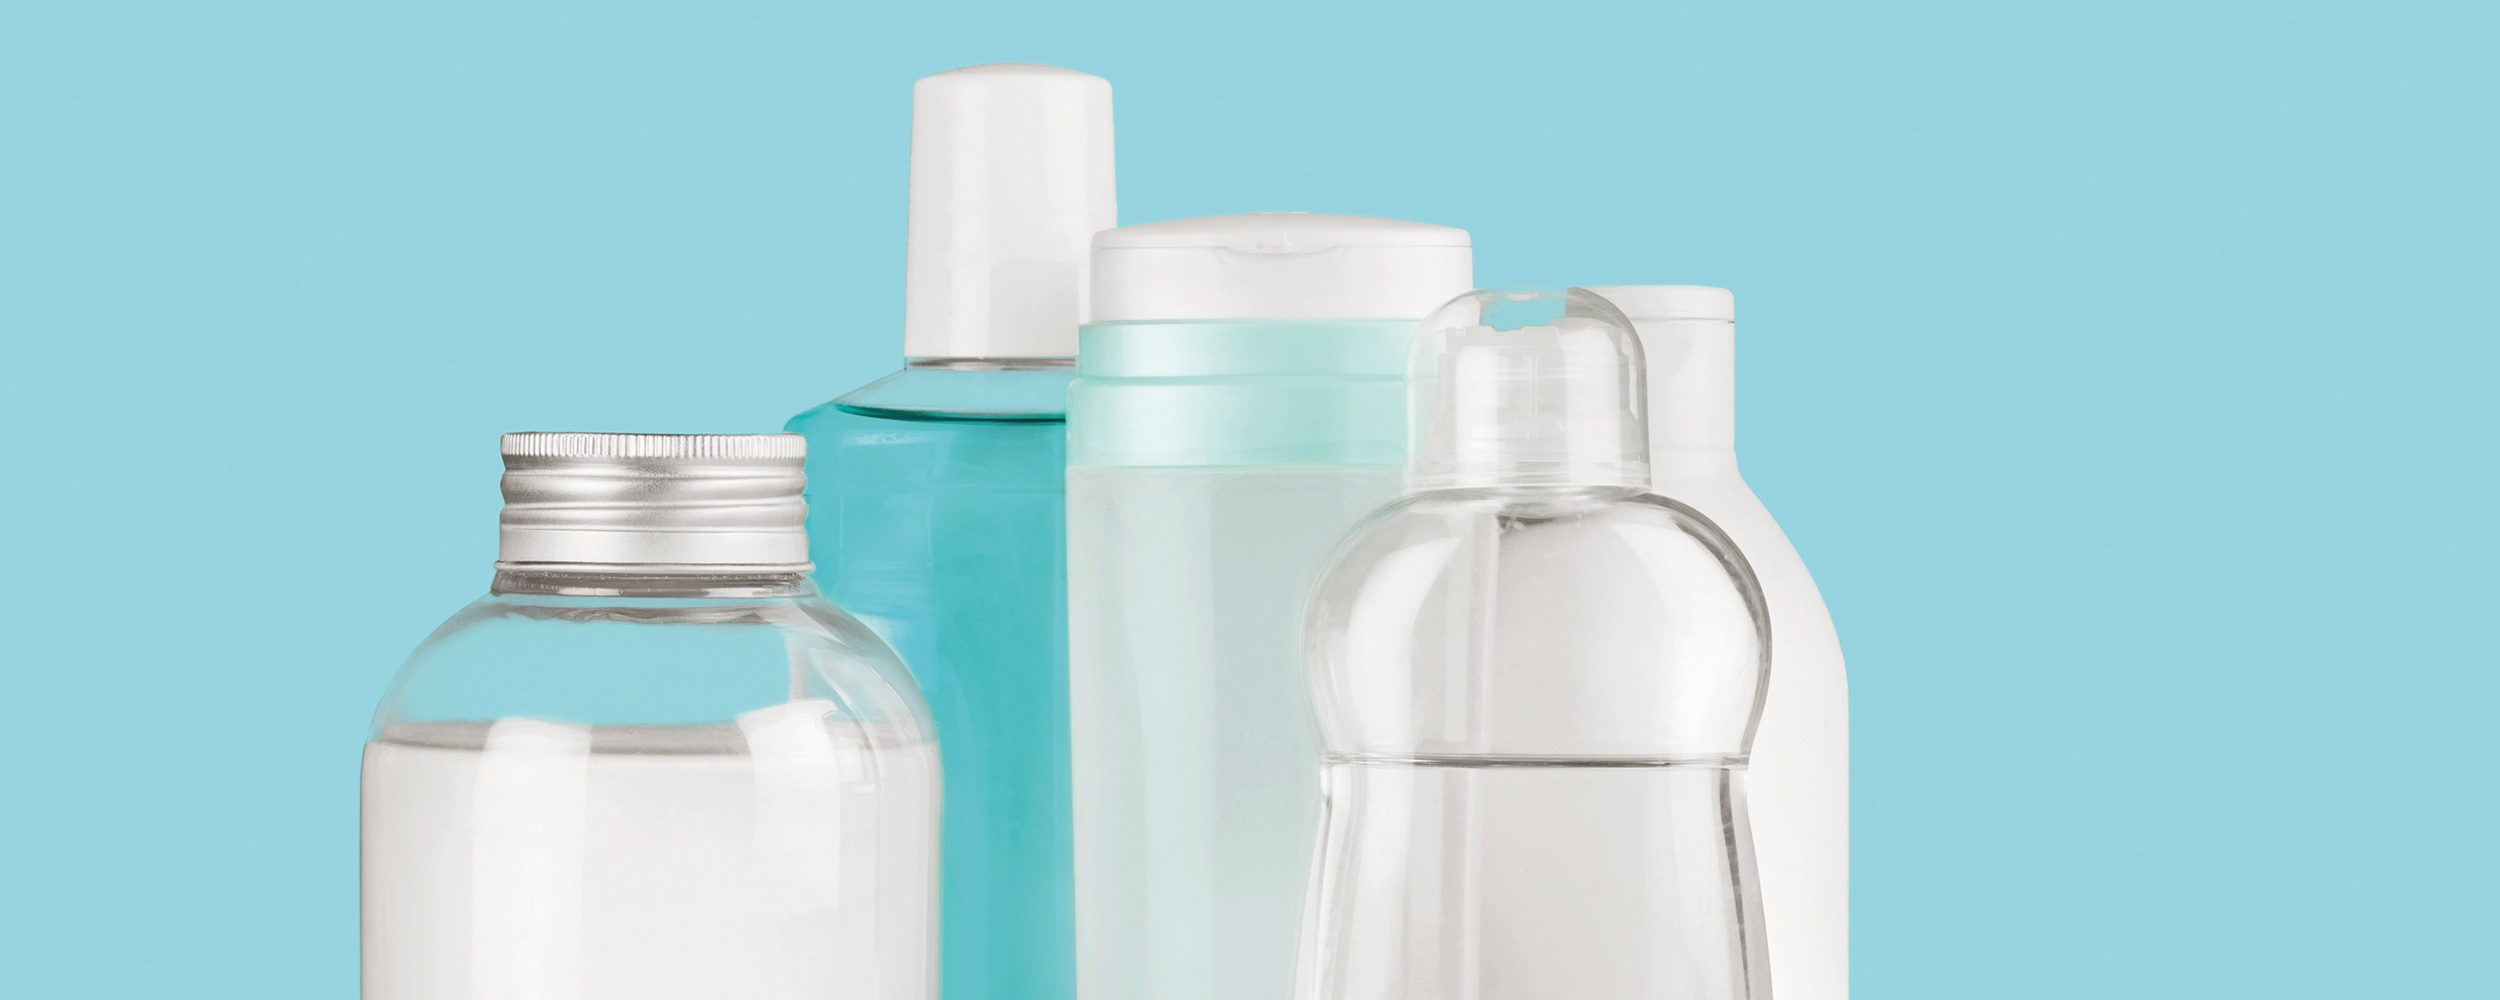 Cosmetics & Toiletries - Fileder Filter Systems